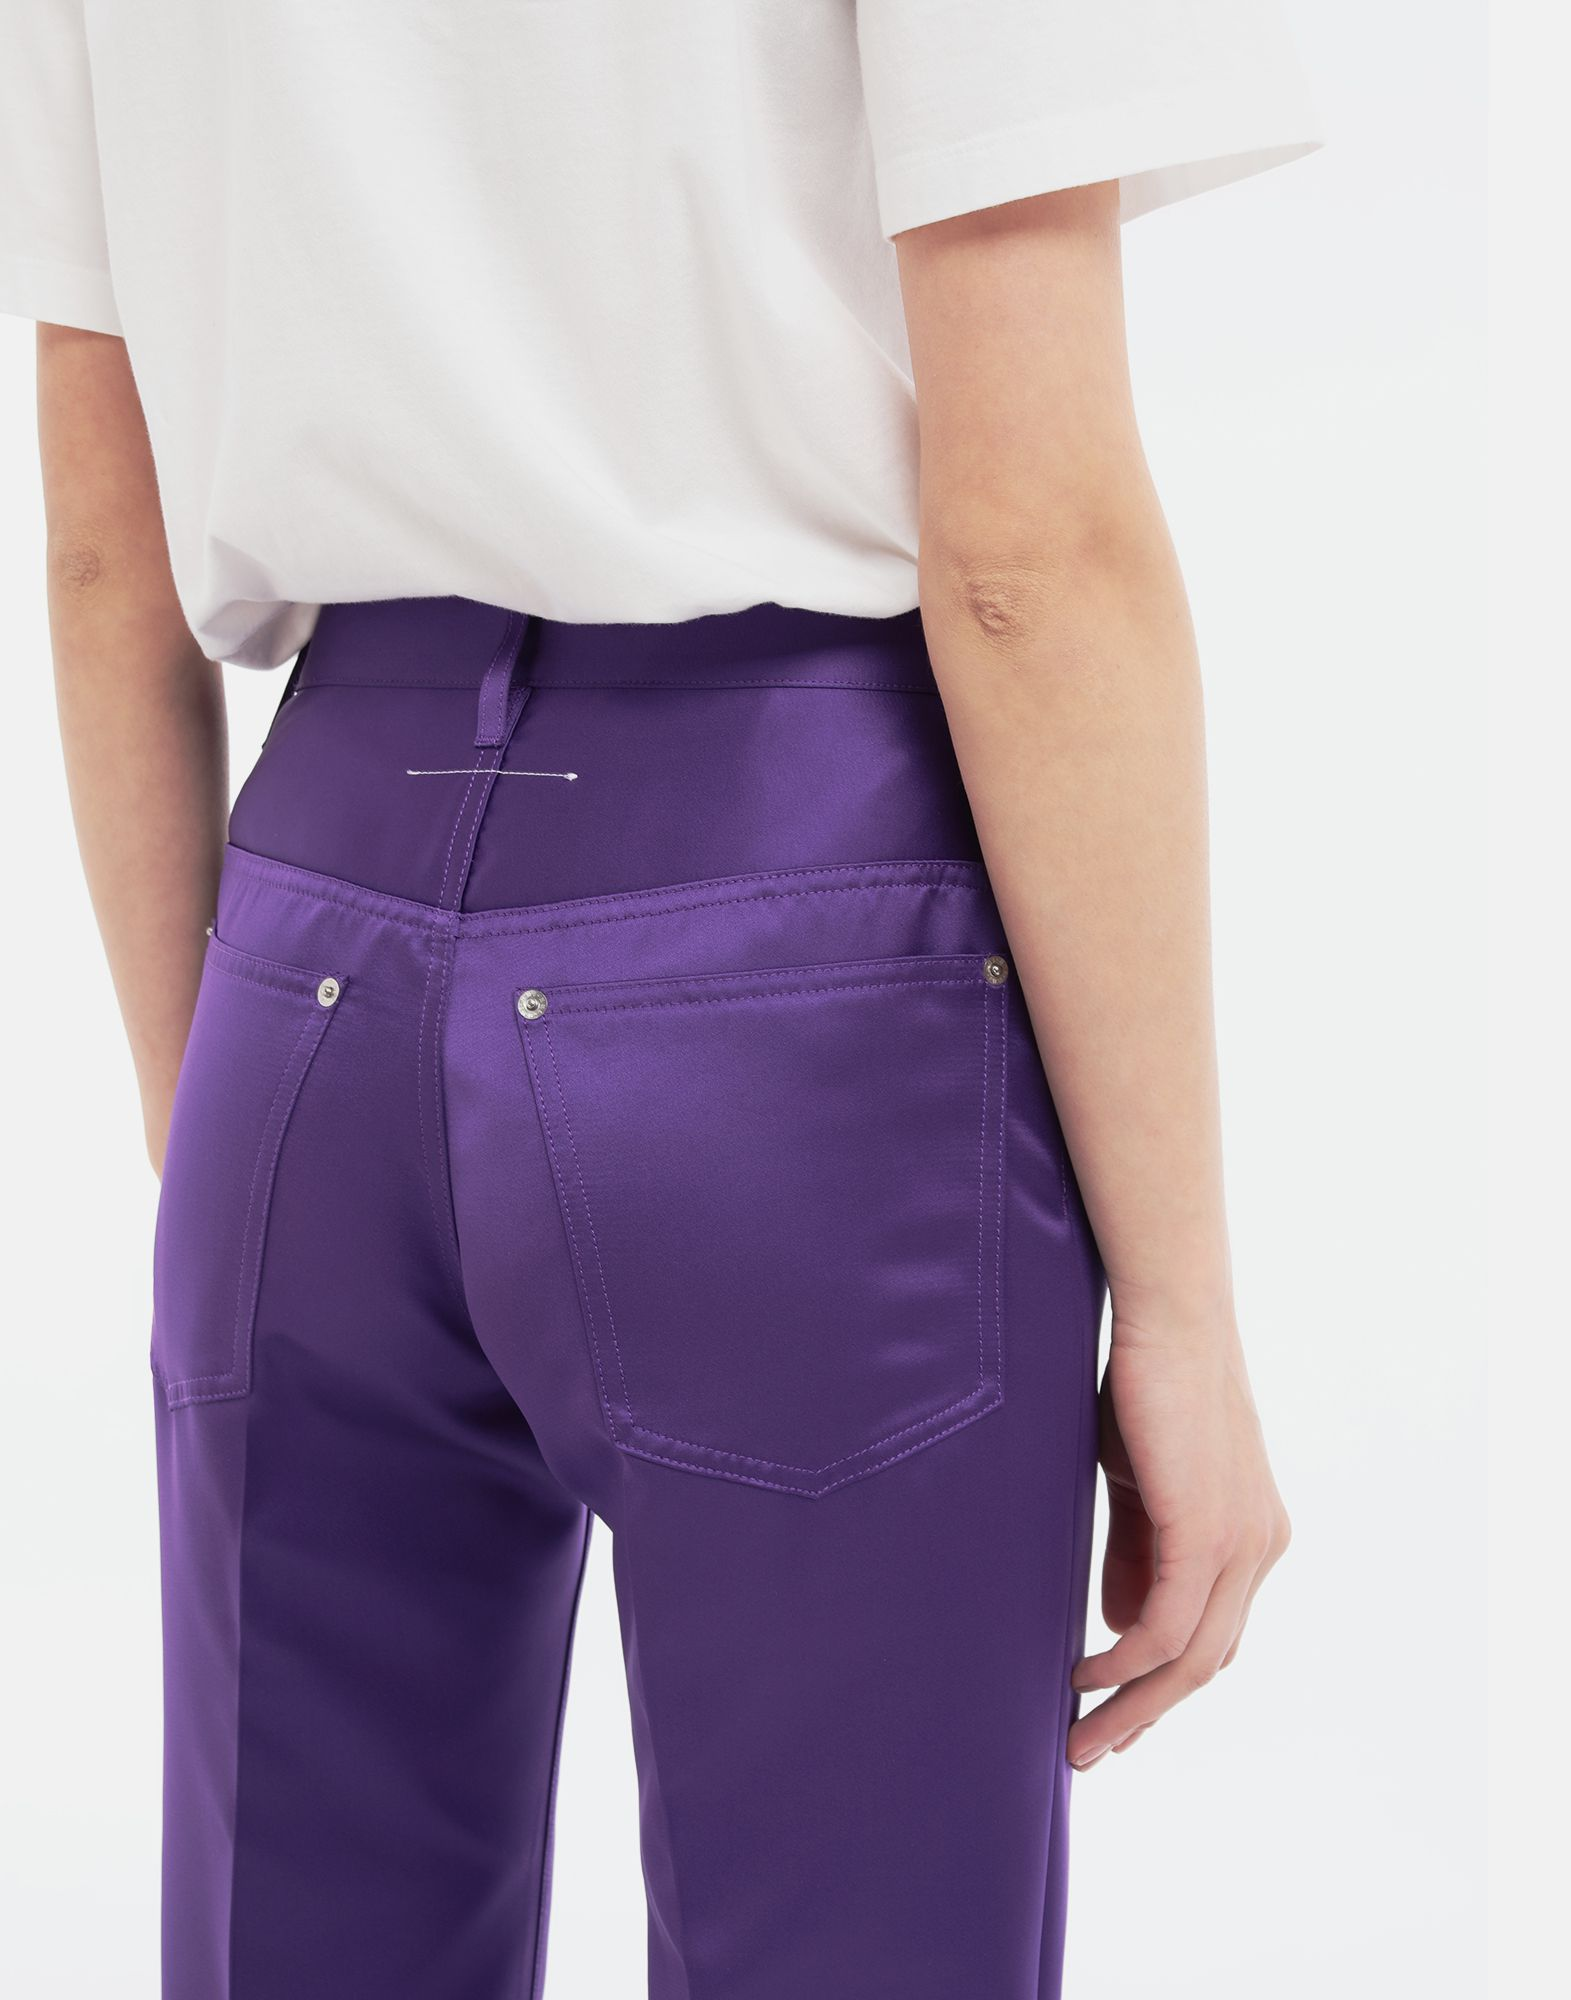 MM6 MAISON MARGIELA High-waisted trousers Casual pants Woman b